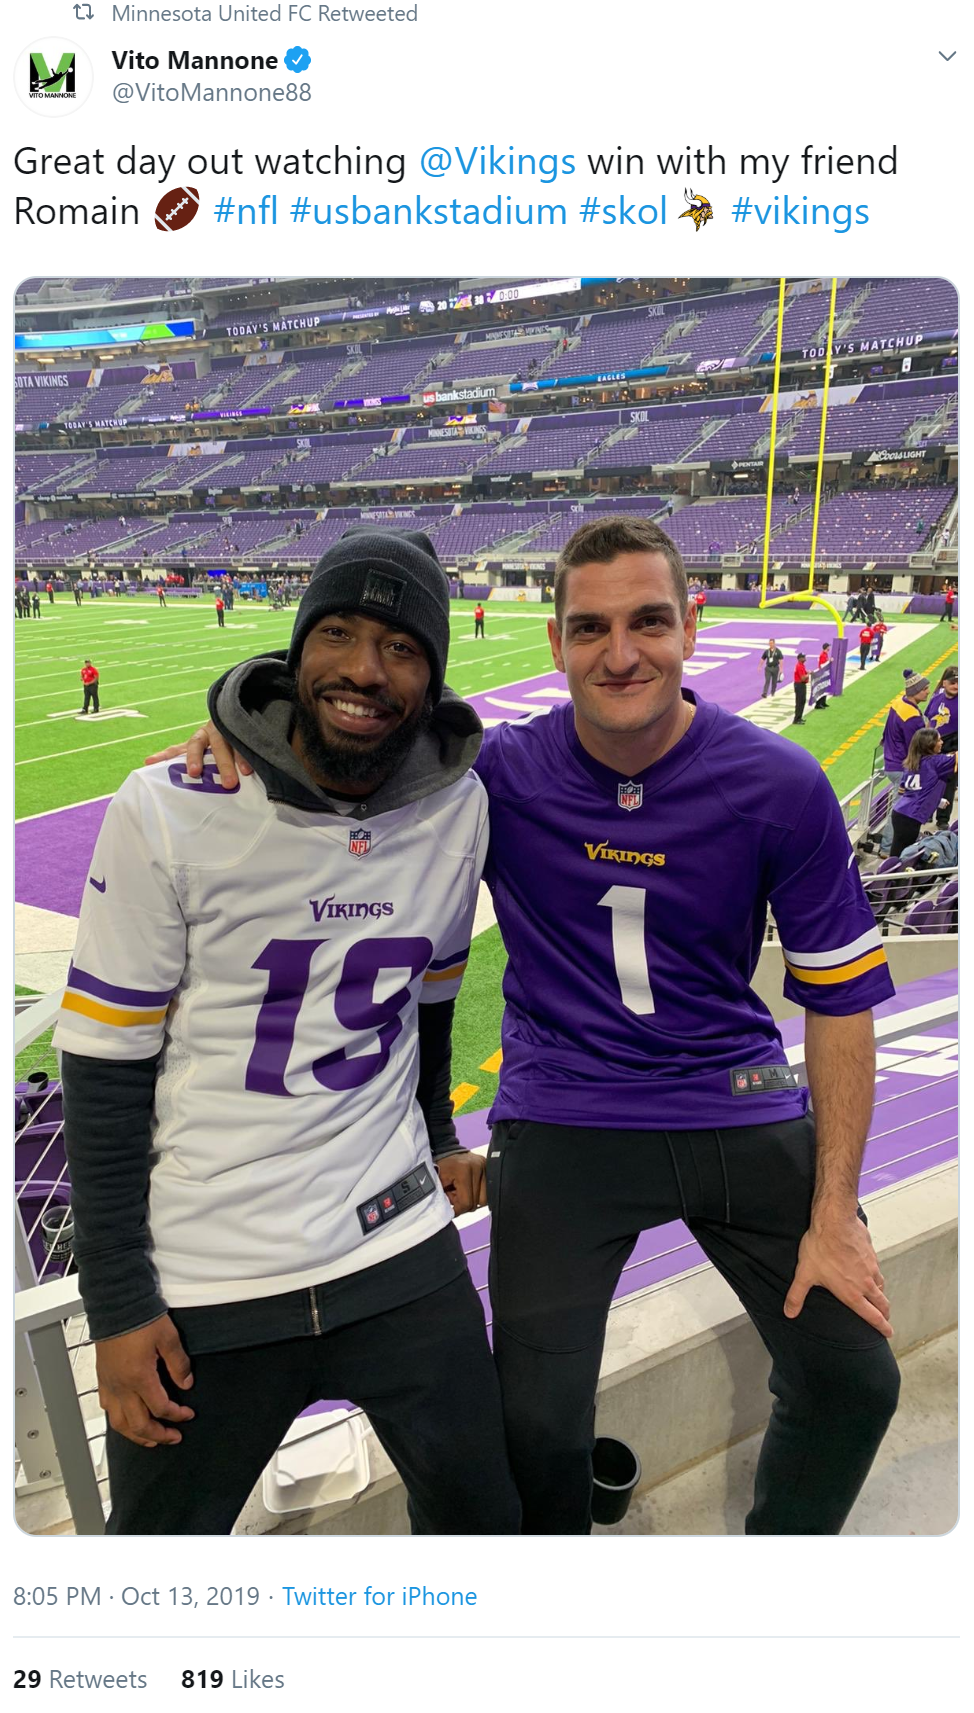 vito at vikings game